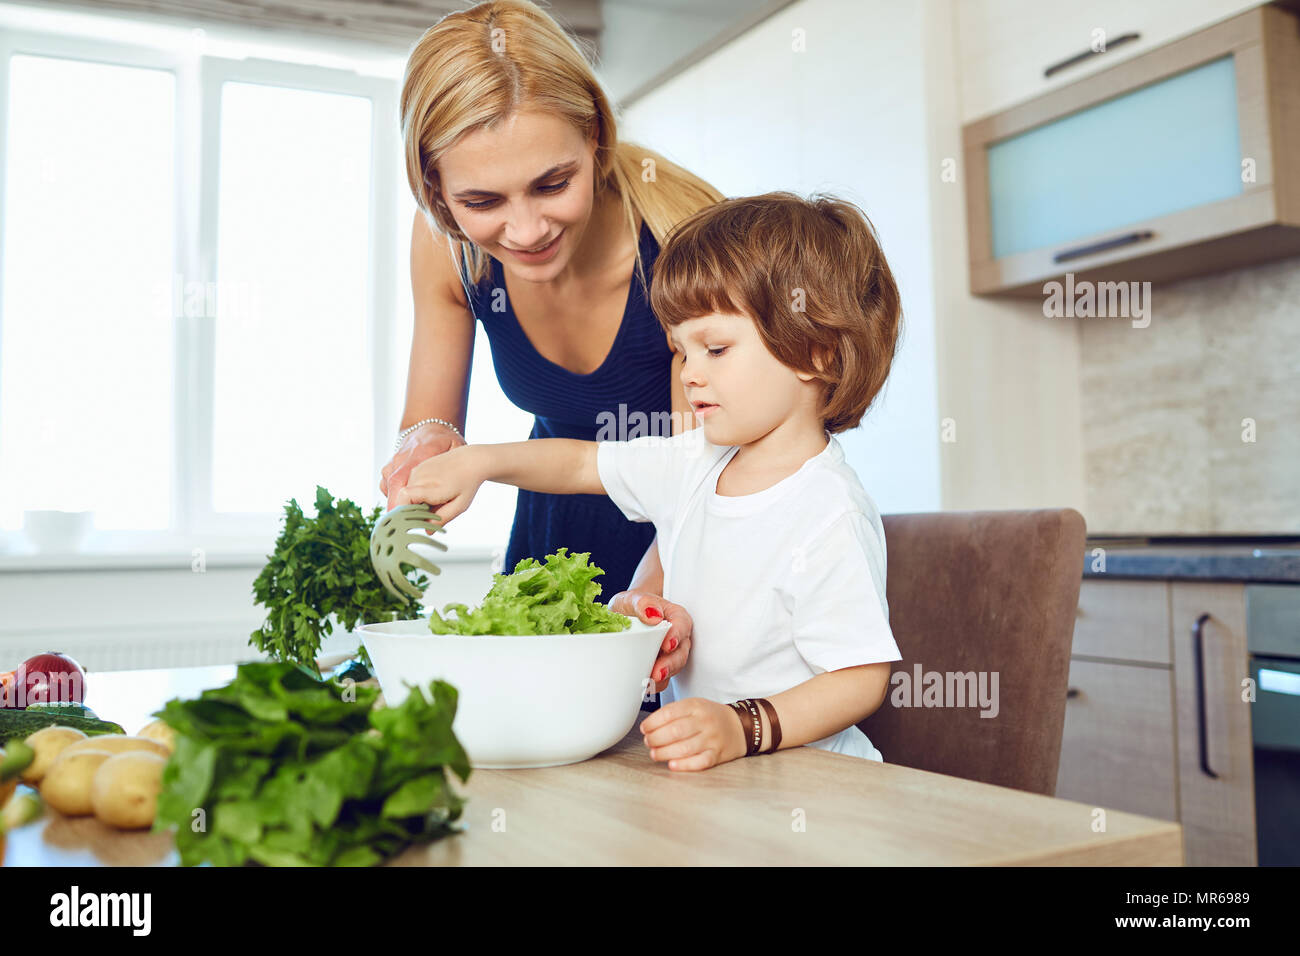 Mom and her child are preparing food in the kitchen.  - Stock Image